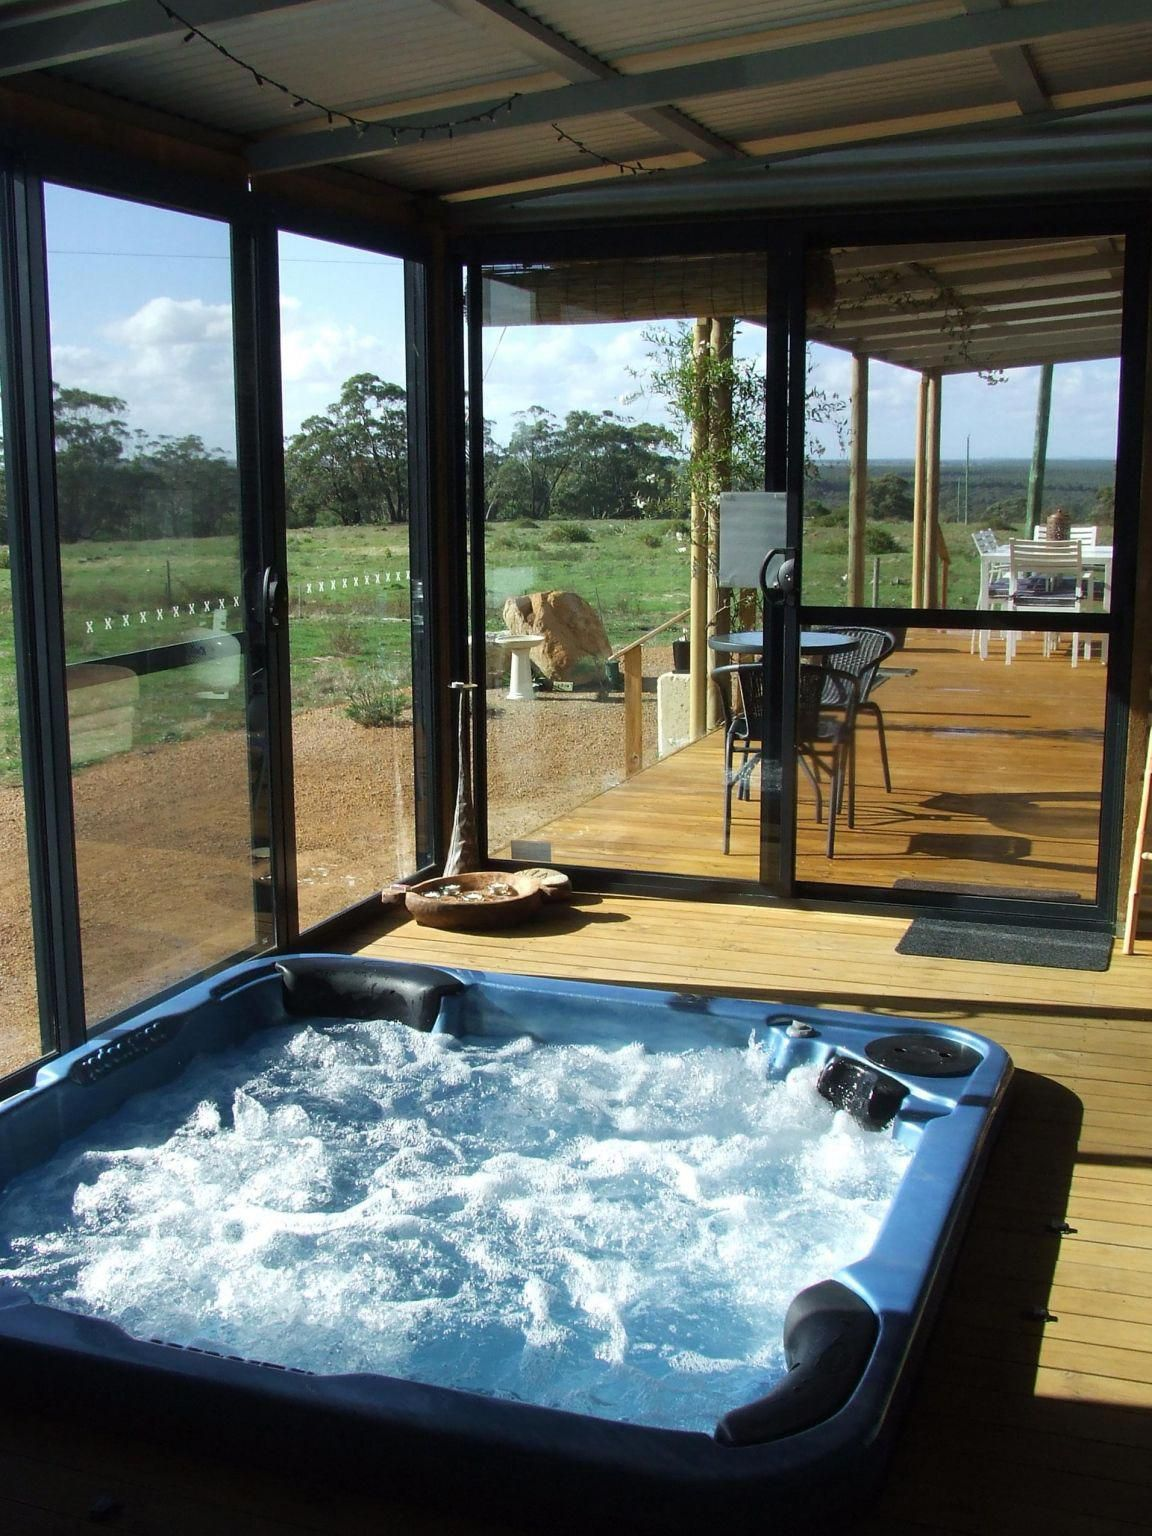 Pin By Patrick Hager On Best Backyard Hottubs Indoor Hot Tub Hot Tub Room Hot Tub